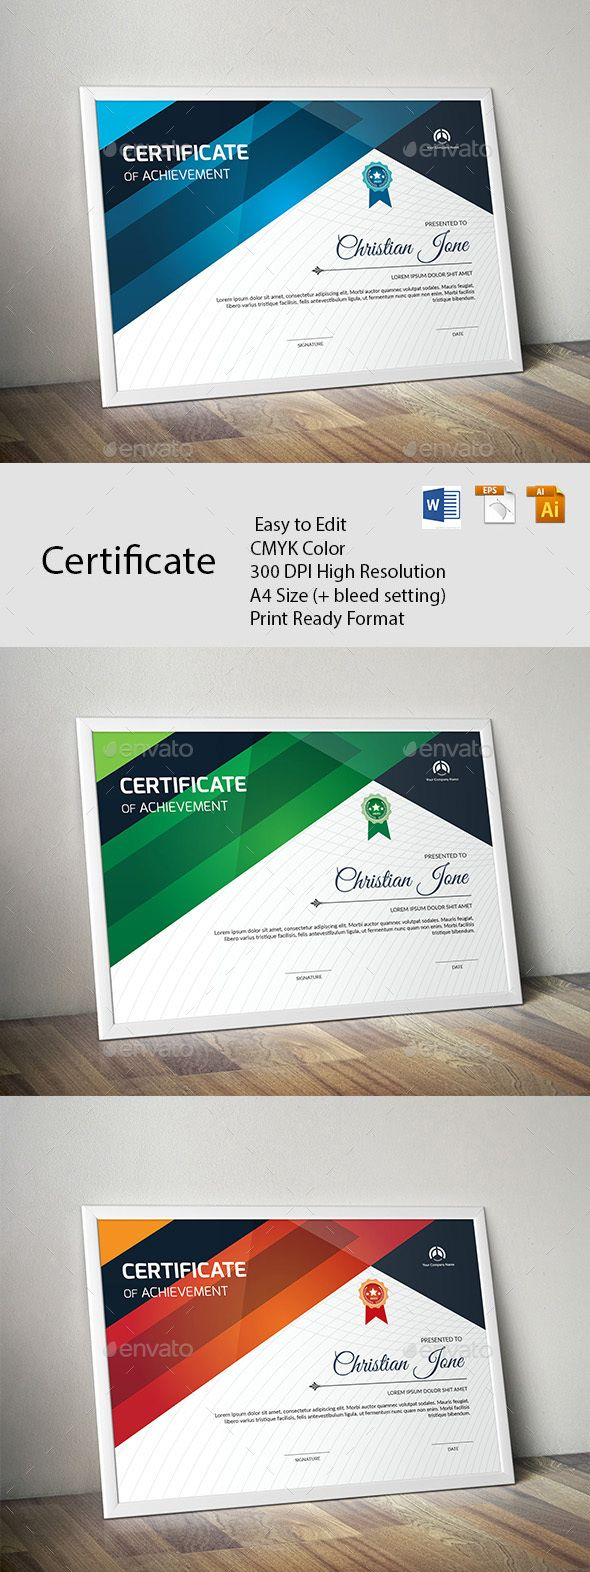 Certificate #cool #clen  • Download here → https://graphicriver.net/item/certificate/20400231?ref=pxcr